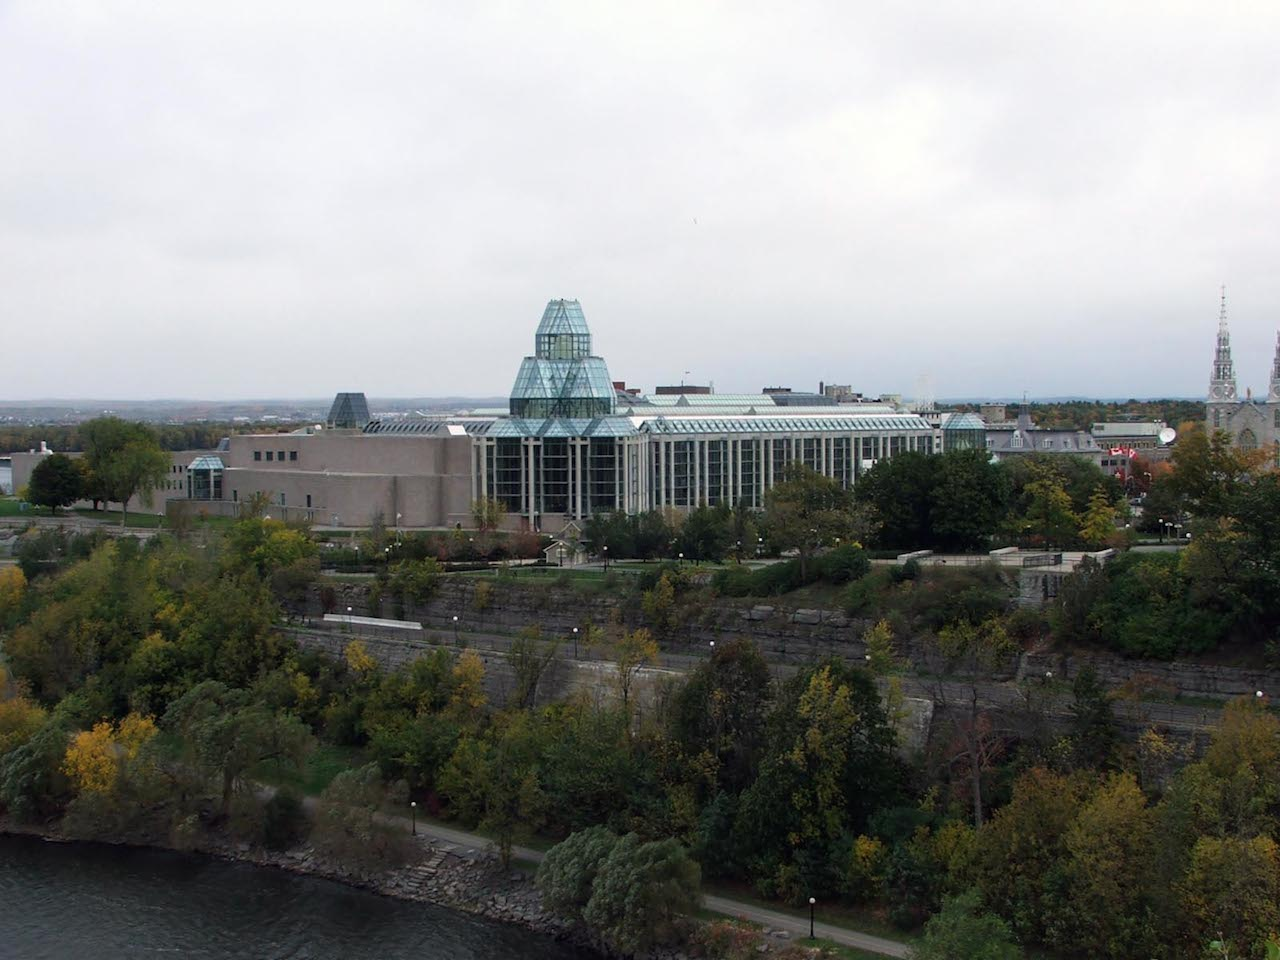 The National Gallery of Canada (photo by Djof/Flickr)